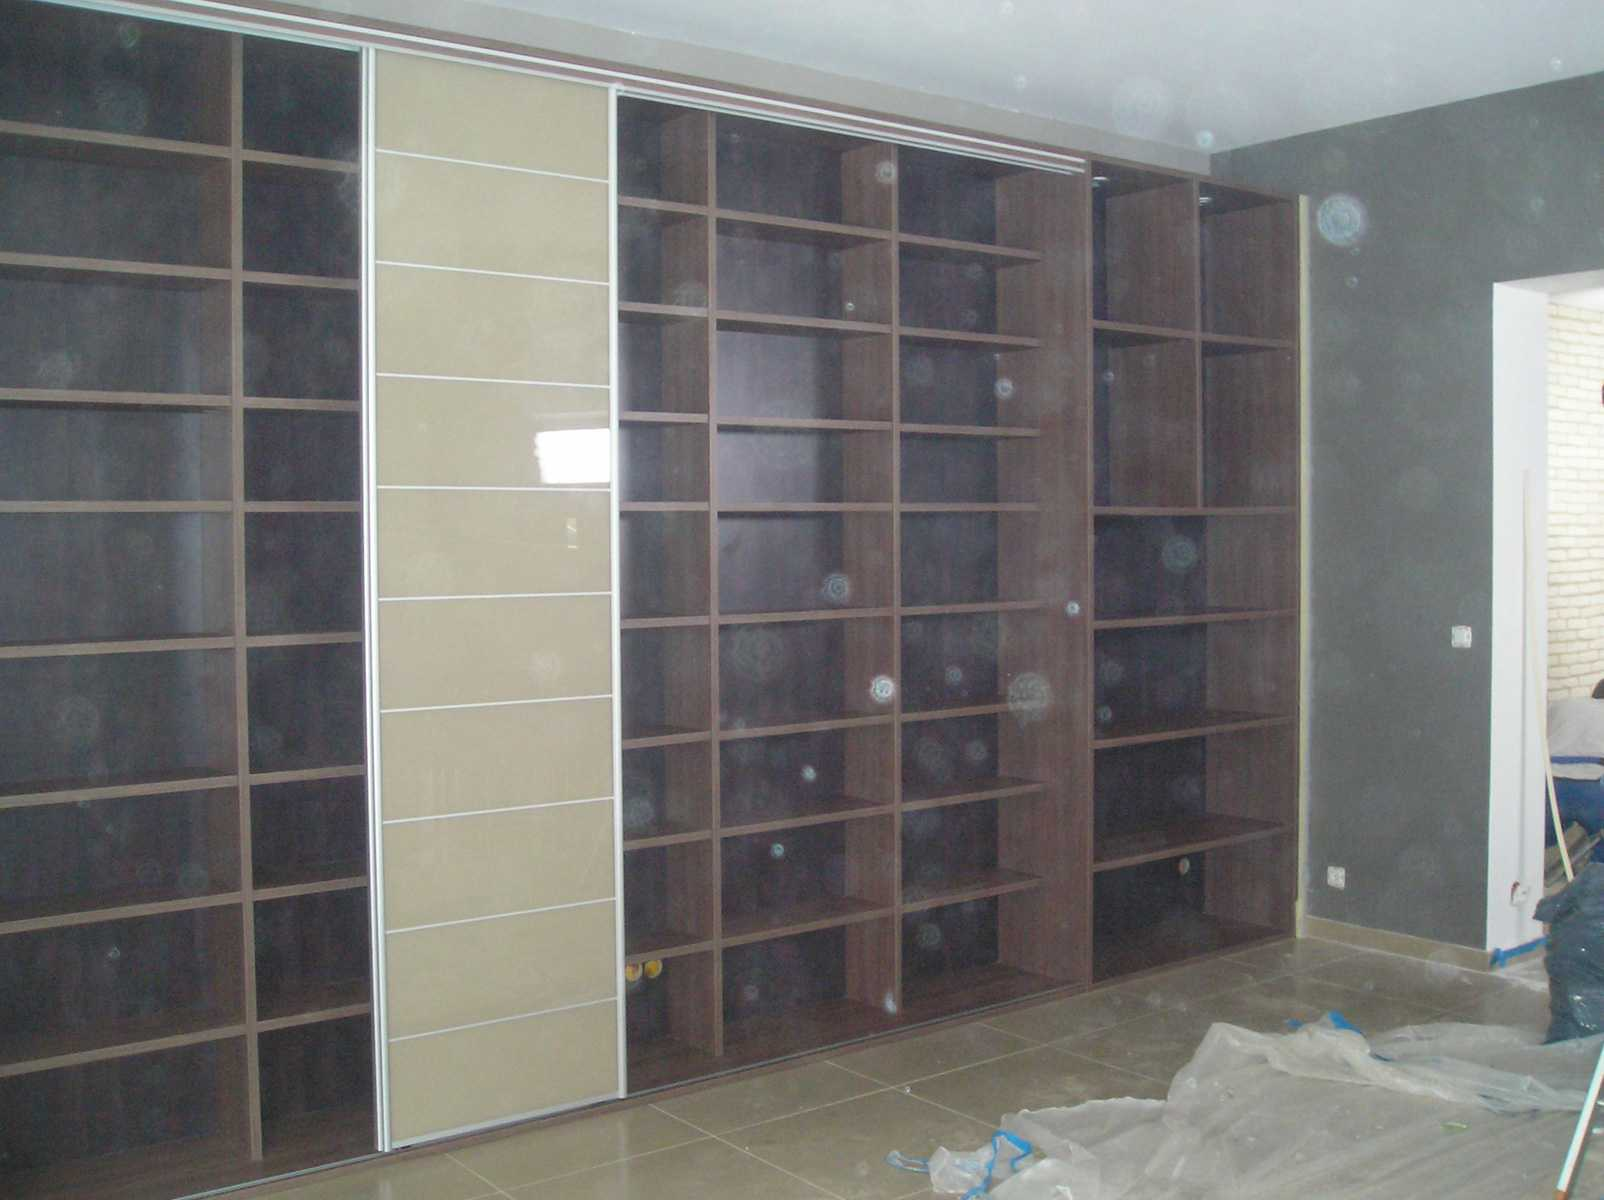 nos r alisations la maison des bibliotheques. Black Bedroom Furniture Sets. Home Design Ideas